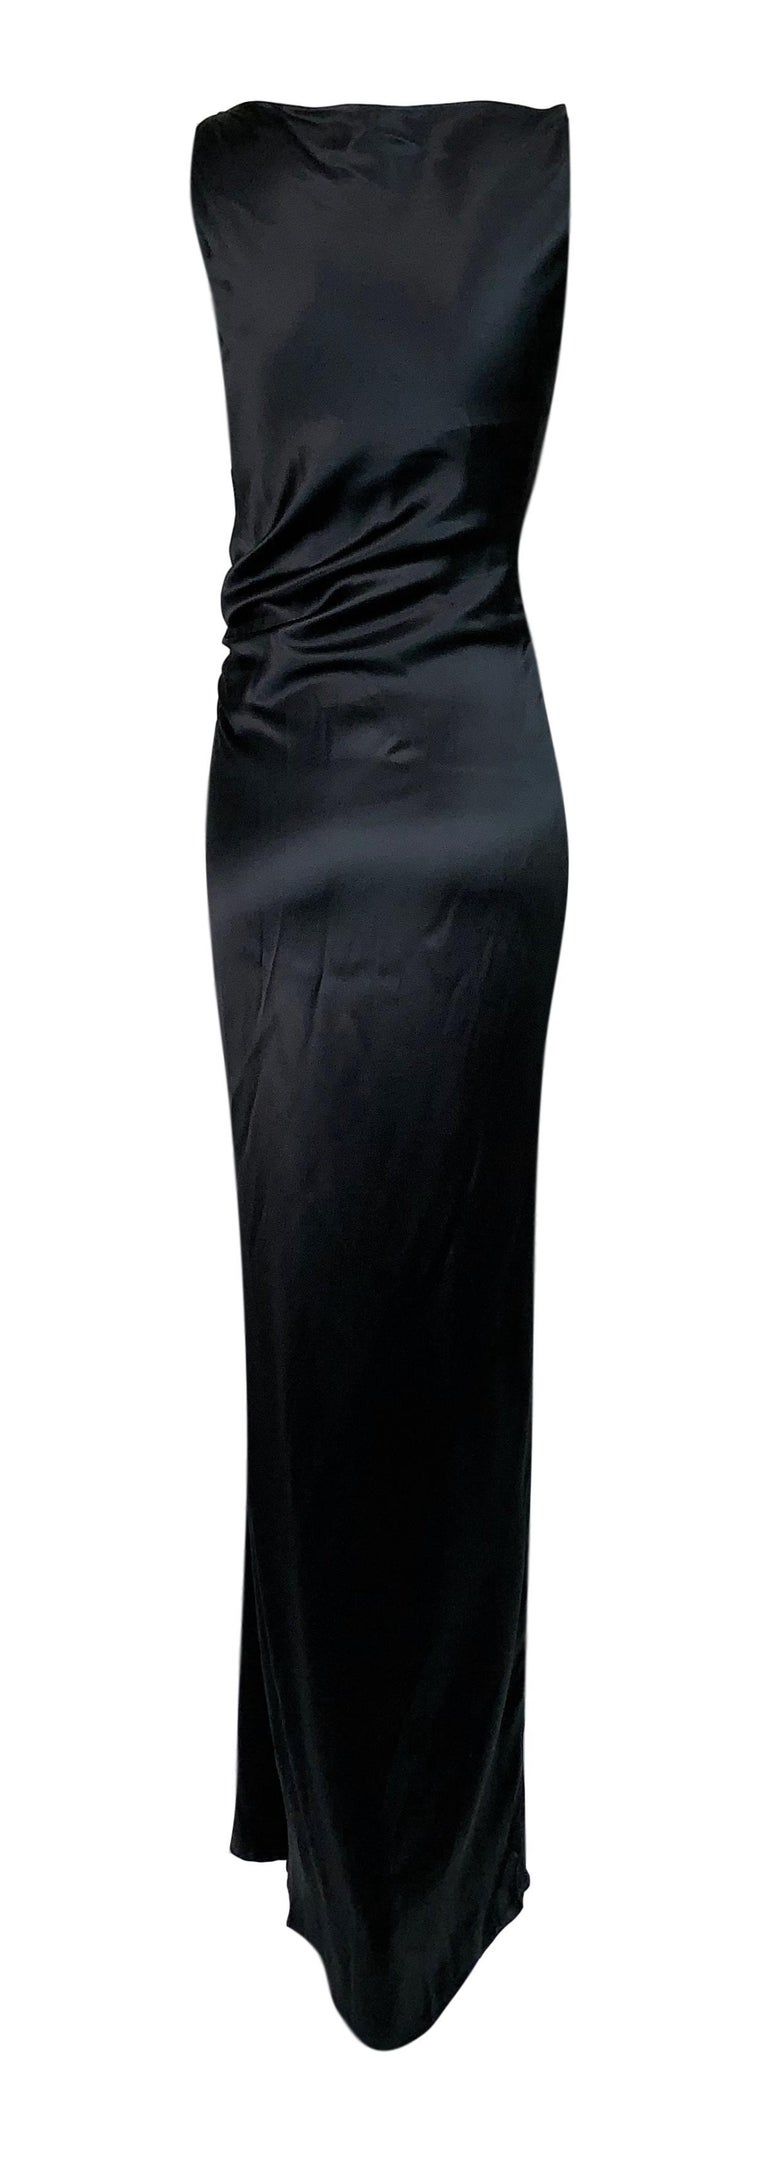 DESIGNER: 1999 Gucci by Tom Ford  Please contact for more information and/or photos.  CONDITION: Good- No holes or stains- fabric tag removed.  FABRIC:  Silk  COUNTRY MADE: Italy  SIZE: 38  MEASUREMENTS; provided as a courtesy only- not a guarantee